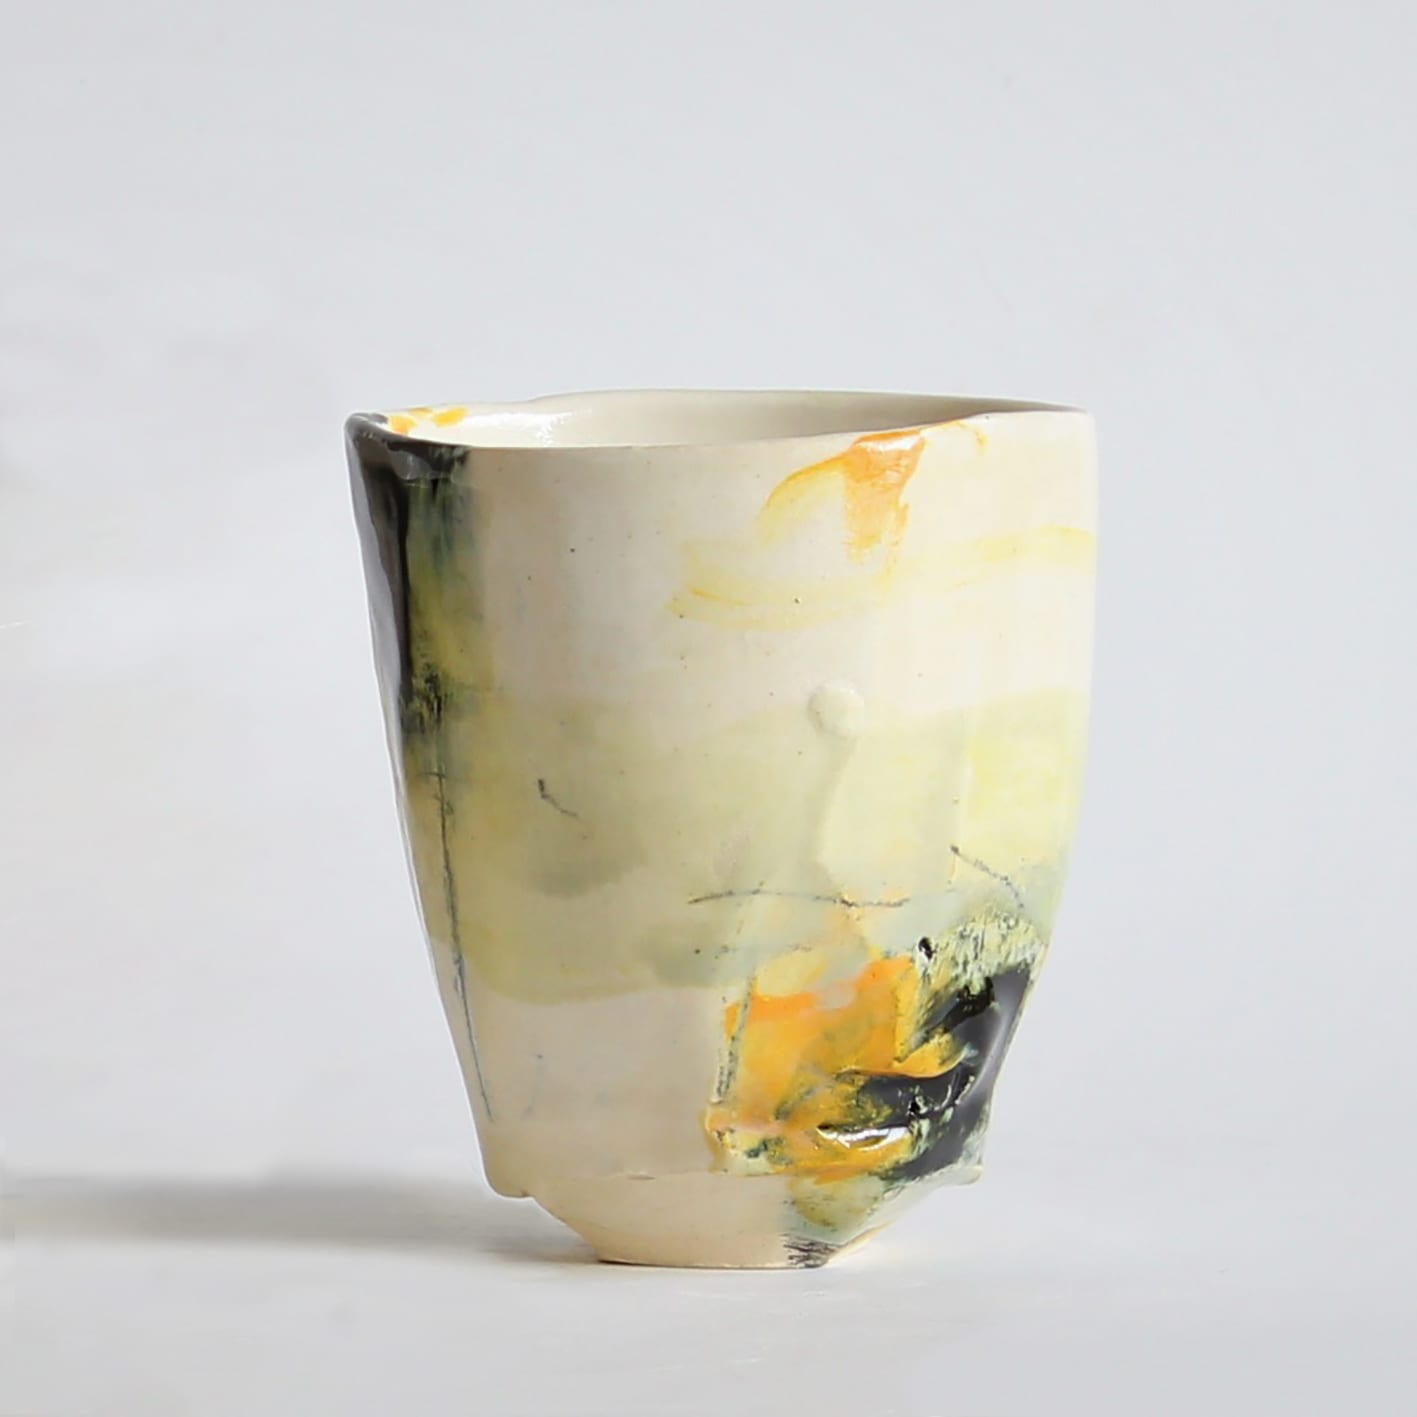 """<span class=""""link fancybox-details-link""""><a href=""""/artists/34-barry-stedman/works/6735-barry-stedman-each-passing-day-series-vessel-i-2019/"""">View Detail Page</a></span><div class=""""artist""""><strong>Barry Stedman</strong></div> b. 1965 <div class=""""title""""><em>'Each Passing Day' Series Vessel (I)</em>, 2019</div> <div class=""""medium"""">thrown and altered earthenware, decorated with slips</div> <div class=""""dimensions"""">10 x 8 cm</div><div class=""""copyright_line"""">Own Art: £ 12.50 x 10 Months, 0% APR</div>"""